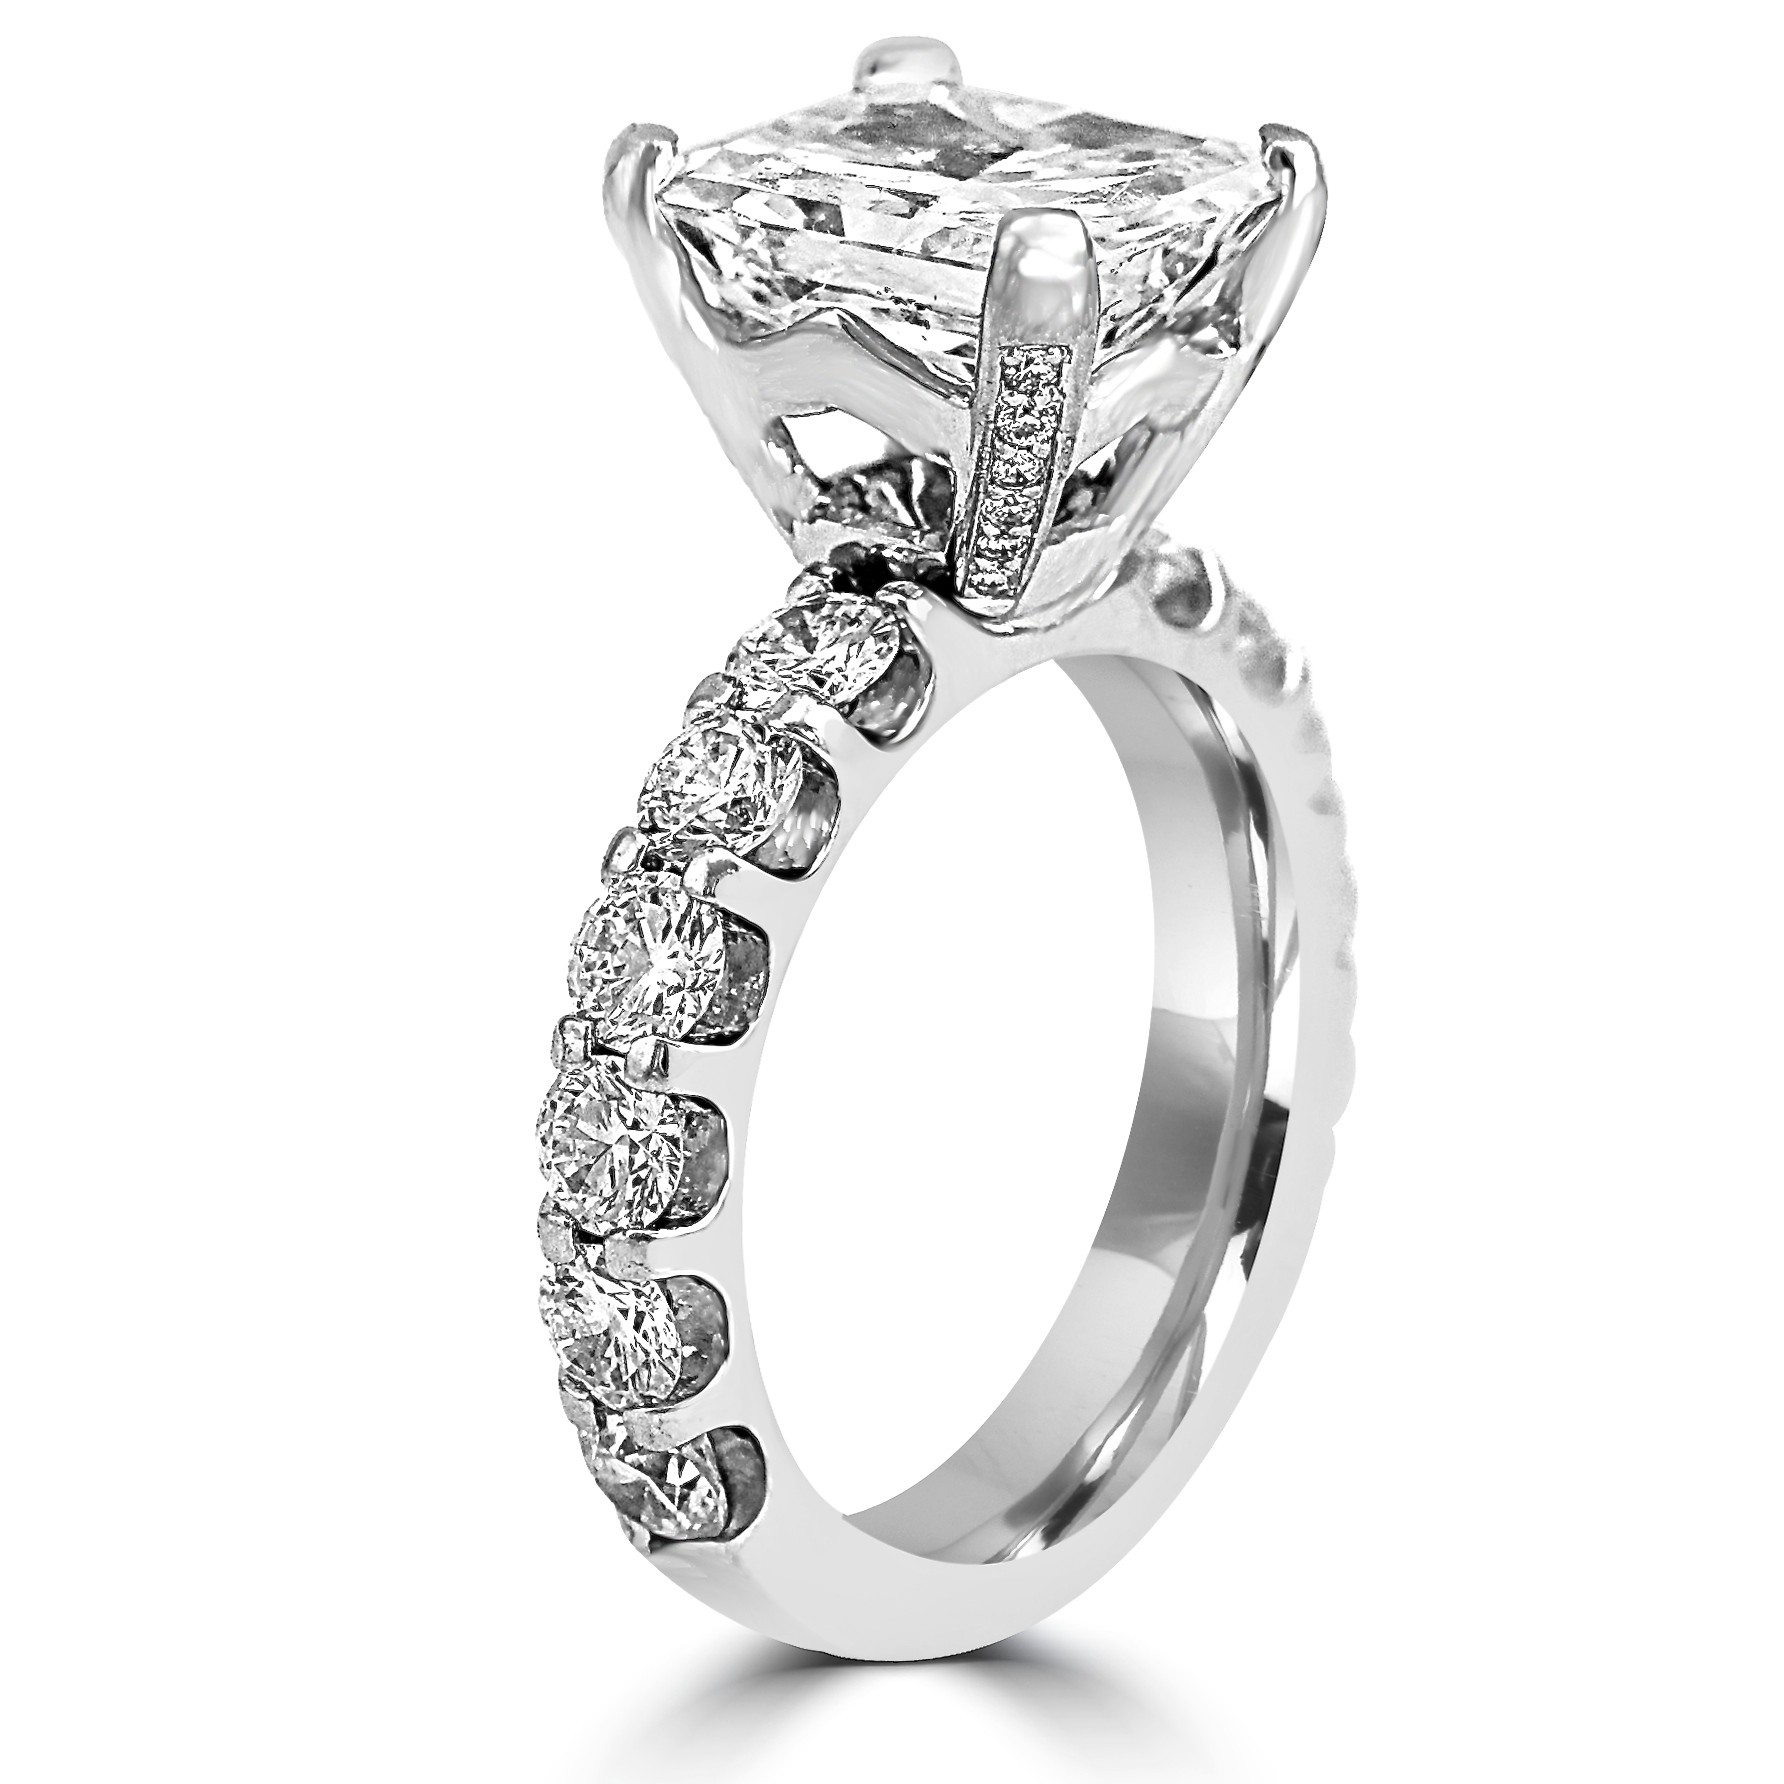 product three k diamond gia stone certified vs white gold cut lab wholesale online nhyrfg engagement rings radiant dhgate at get ring from store com